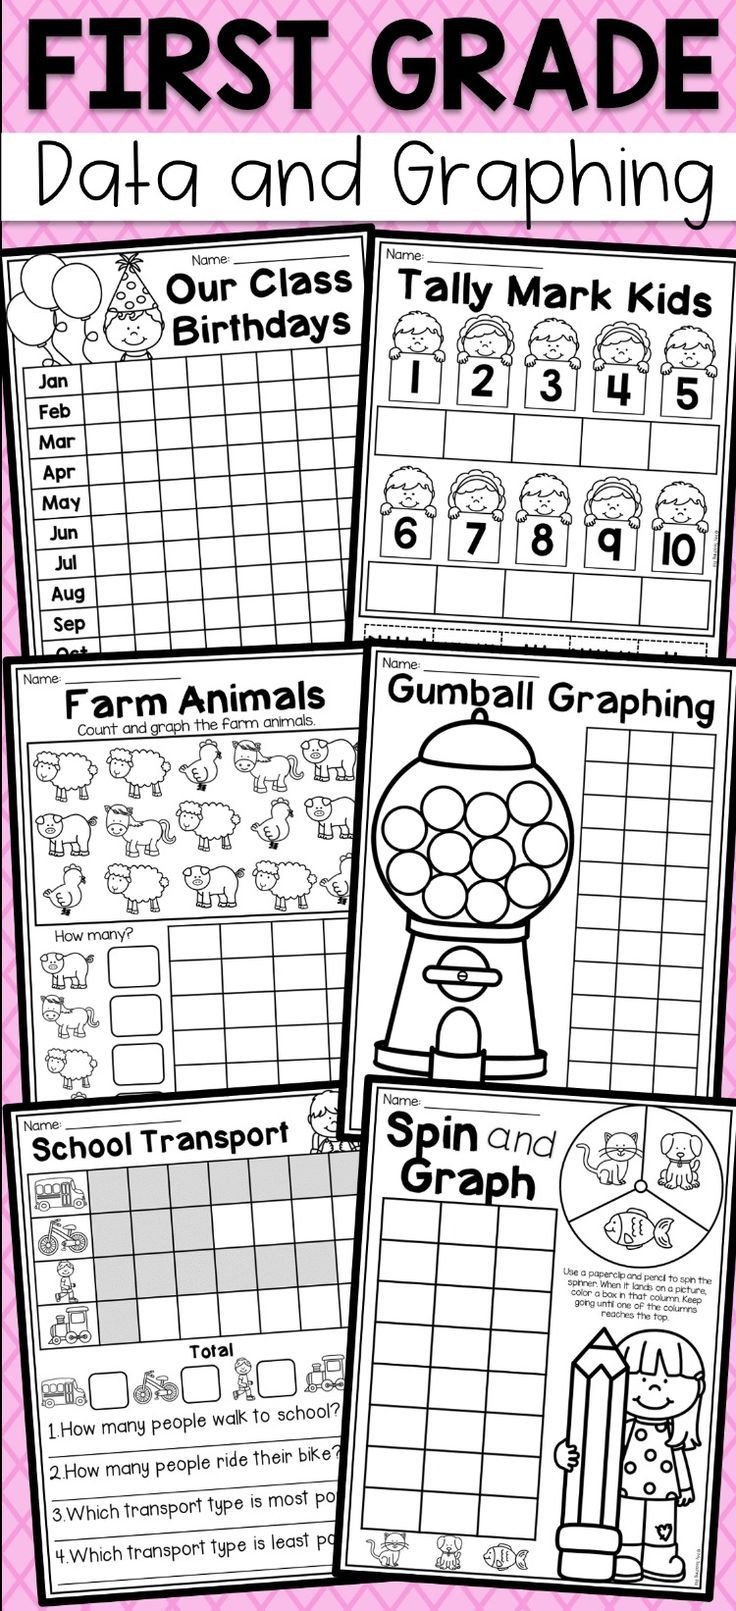 First Grade Graphing Worksheets First Grade Data and Graphing Worksheets Distance Learning